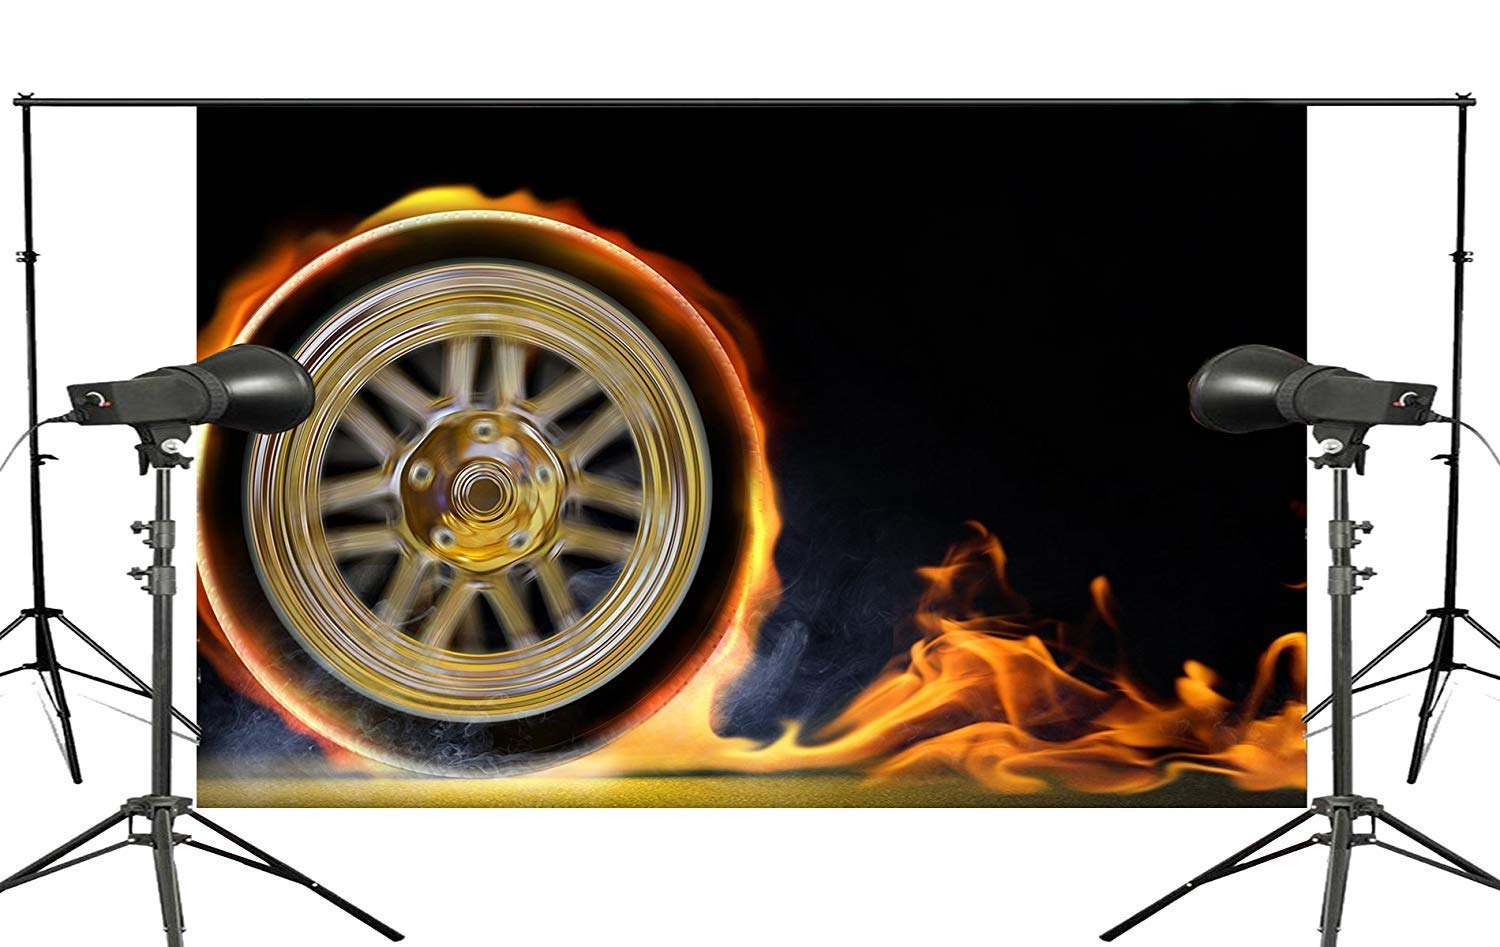 ERTIANANG Black Background fire Wheel Ready to Play The Background of The Venue Studio Photography Background 150x210cm